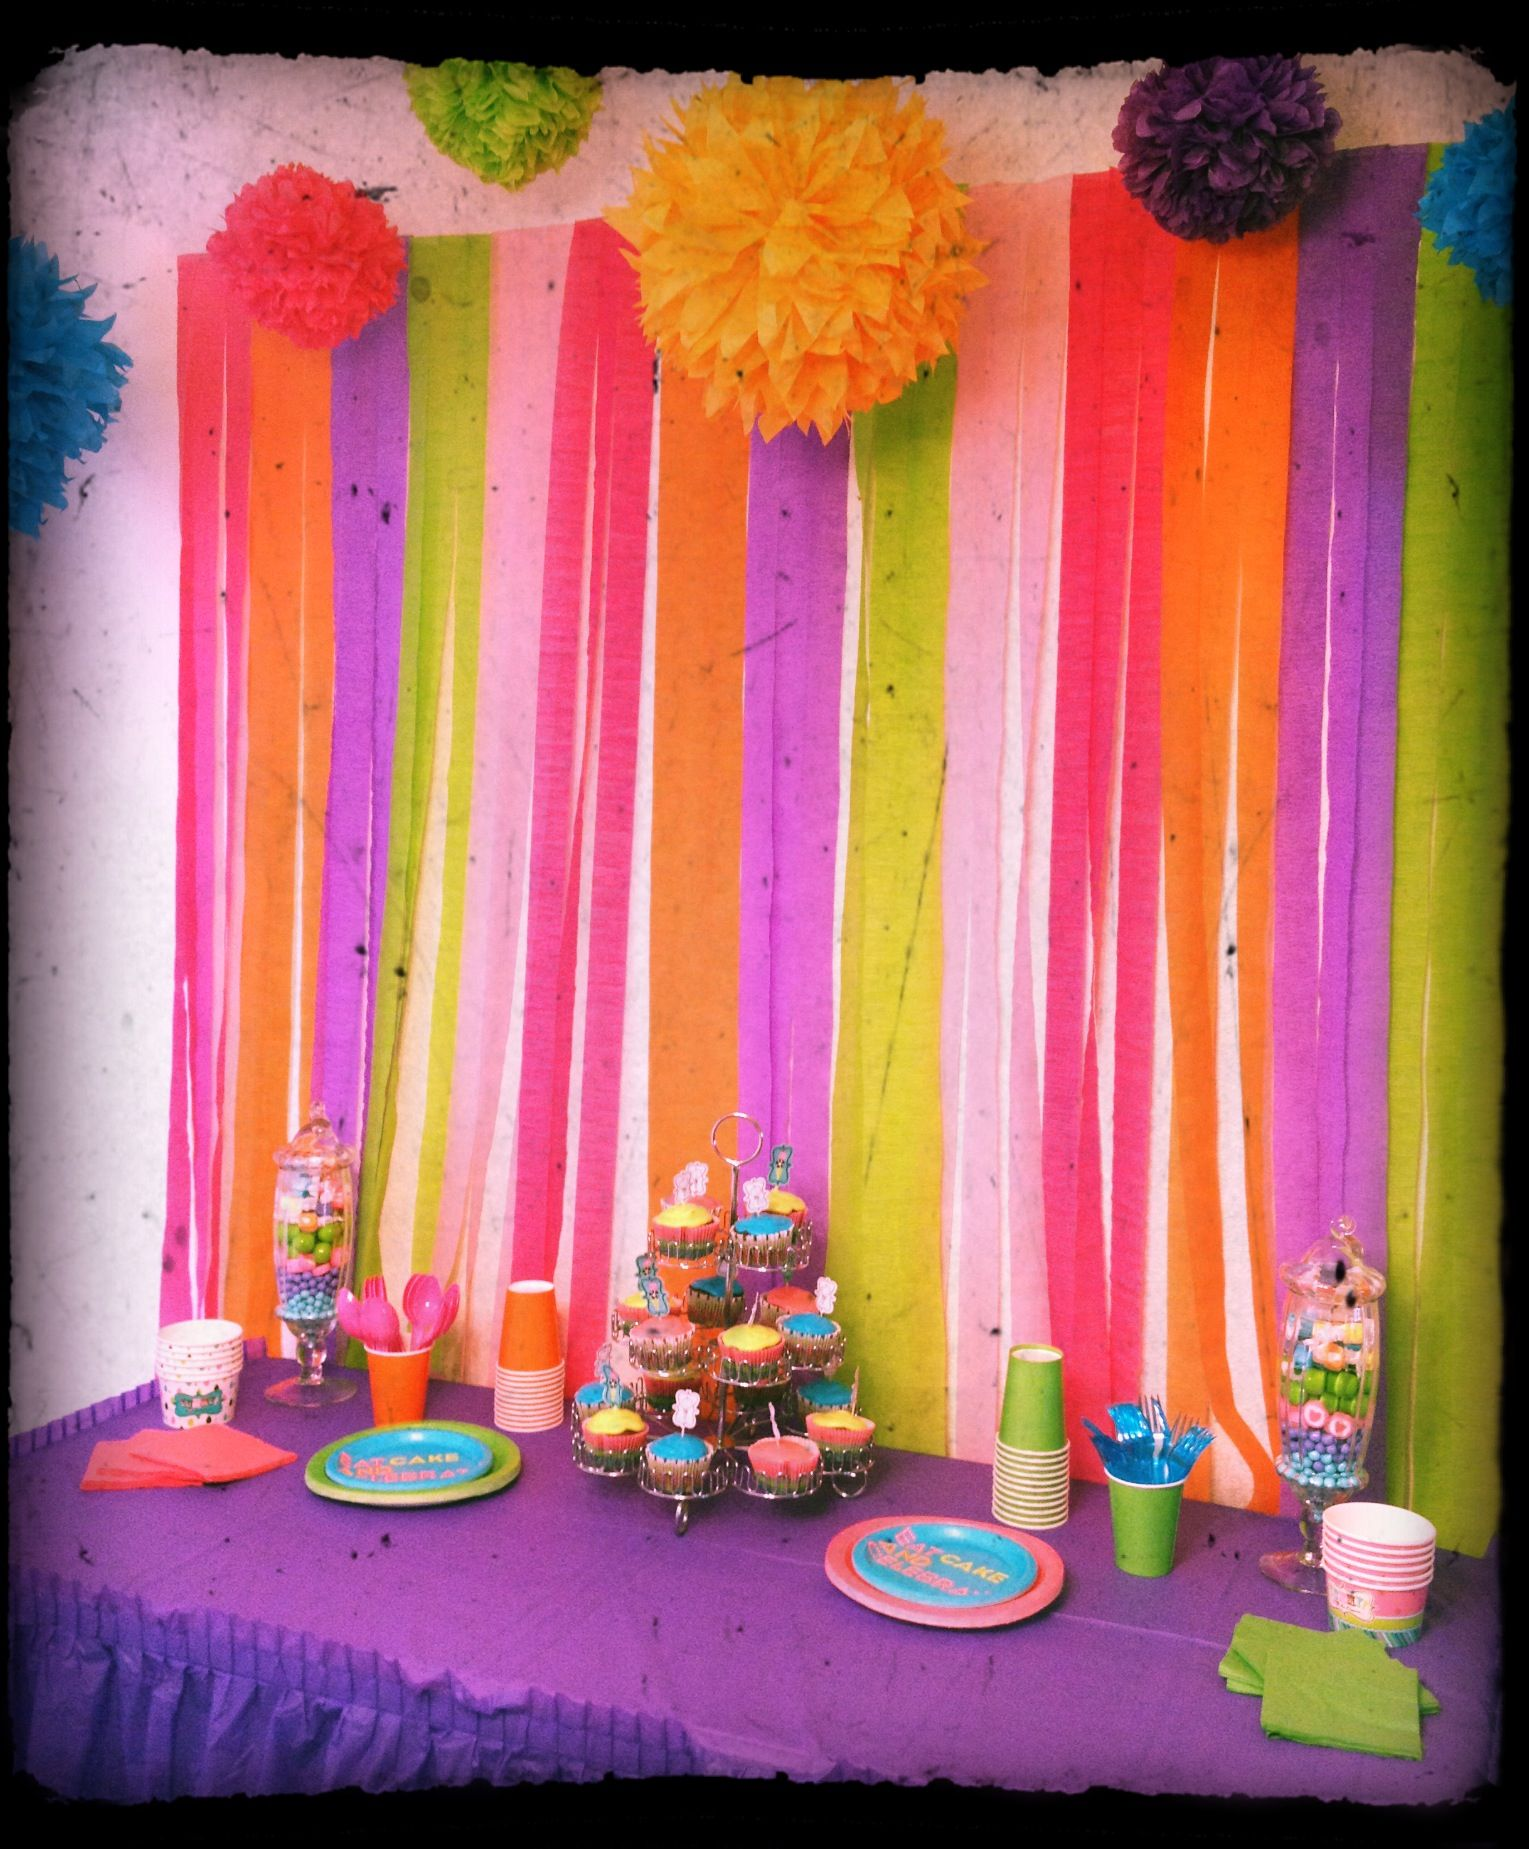 Party Decorations For My Girls 7th Birthday